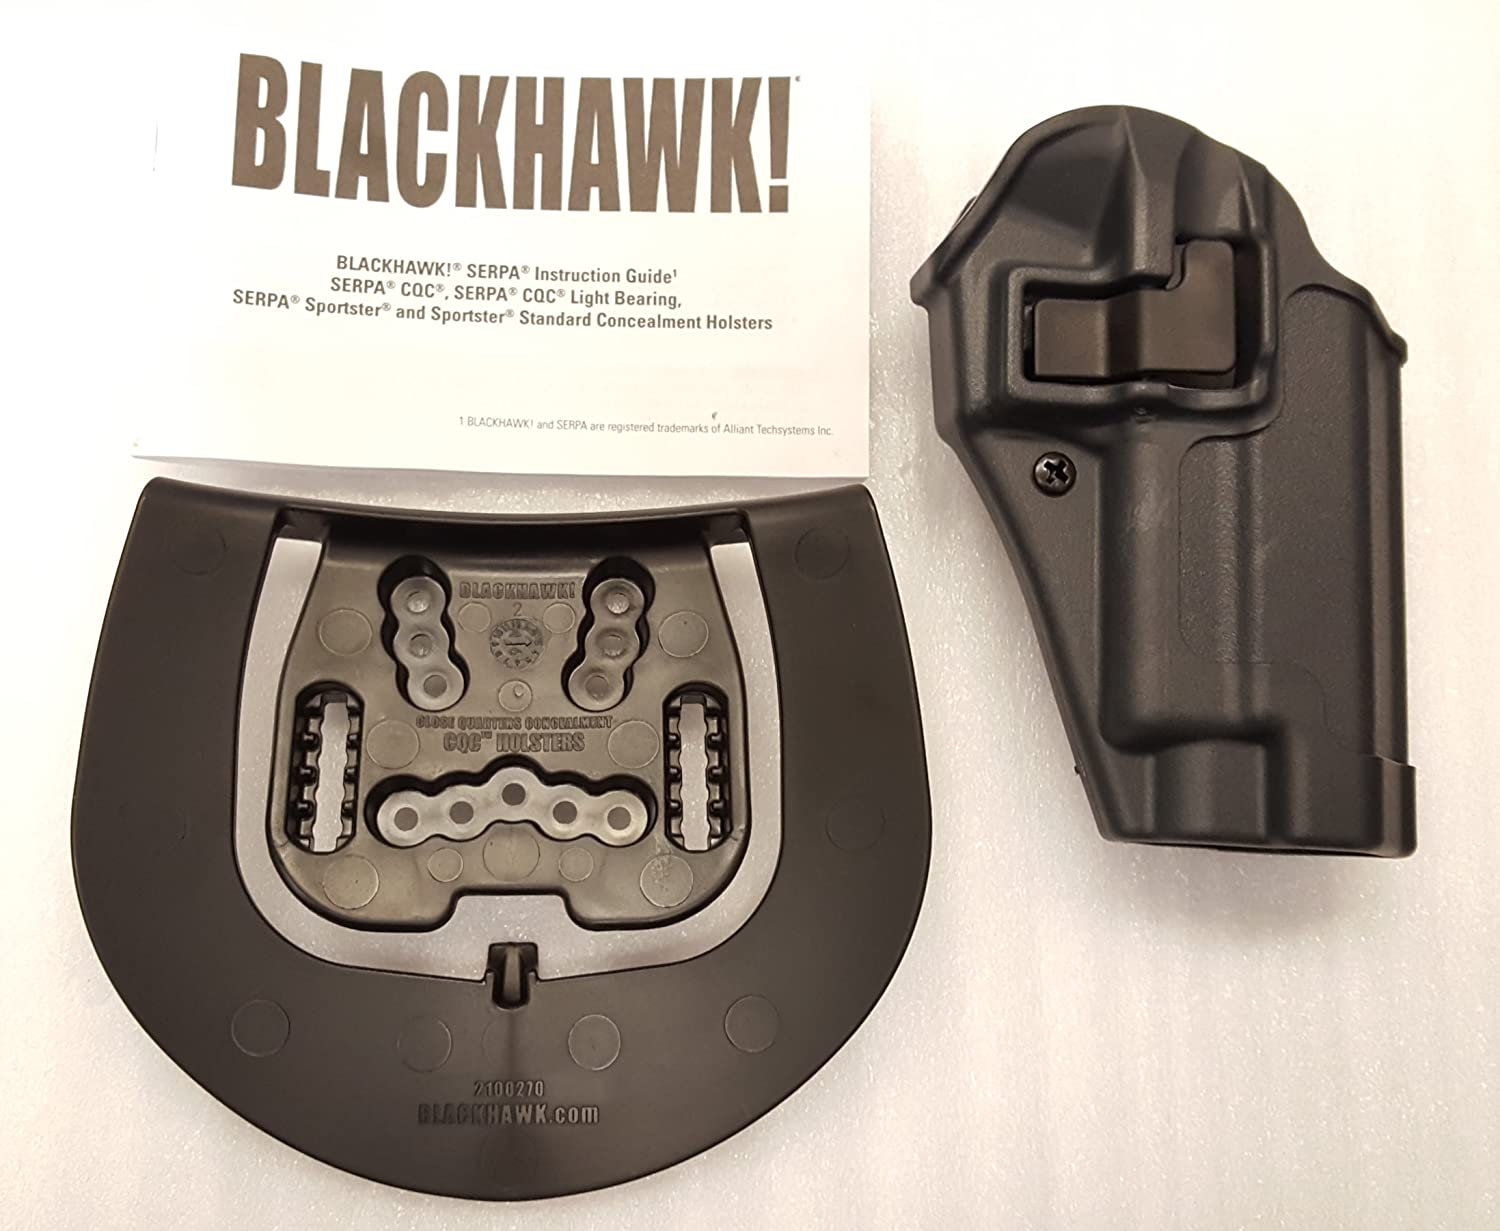 BLACKHAWK SERPA SPORTSTER RIGHTHAND